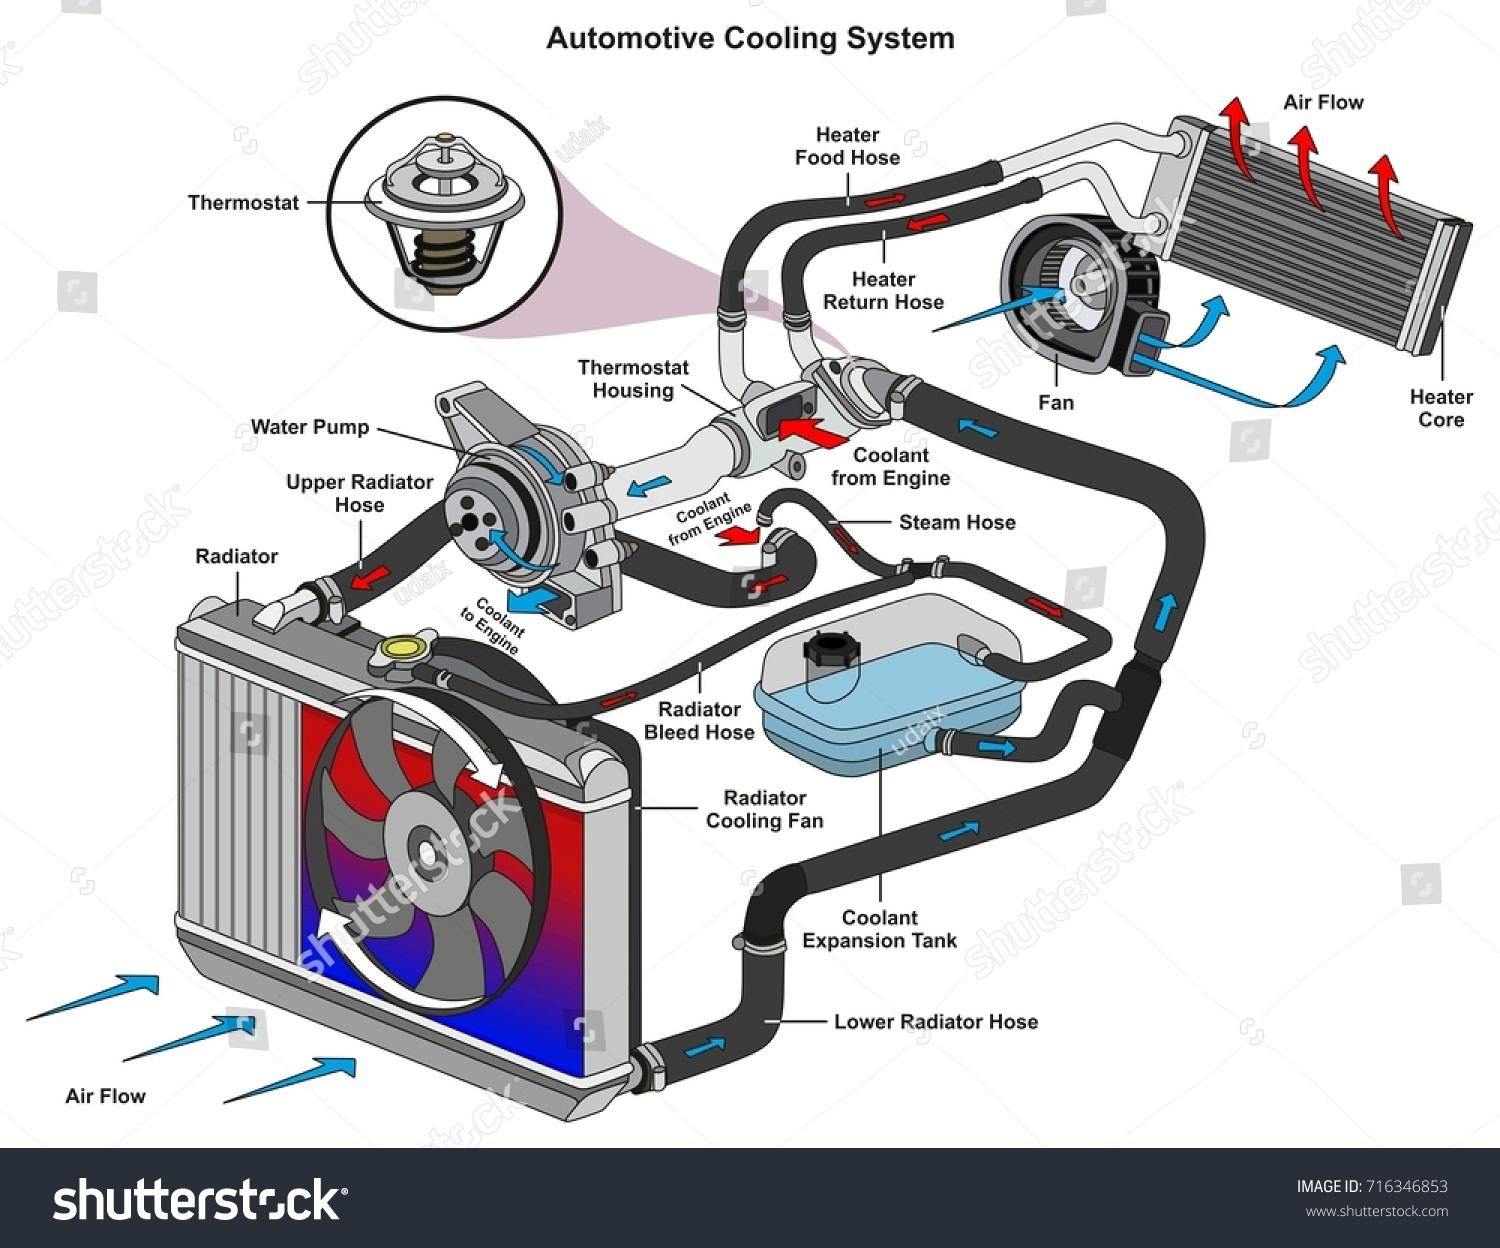 Automotive Cooling System Infographic Diagram Showing Stock Vector Cylinder Thermostat Wiring Process And All Parts Included Radiator Hoses Coolant Flow